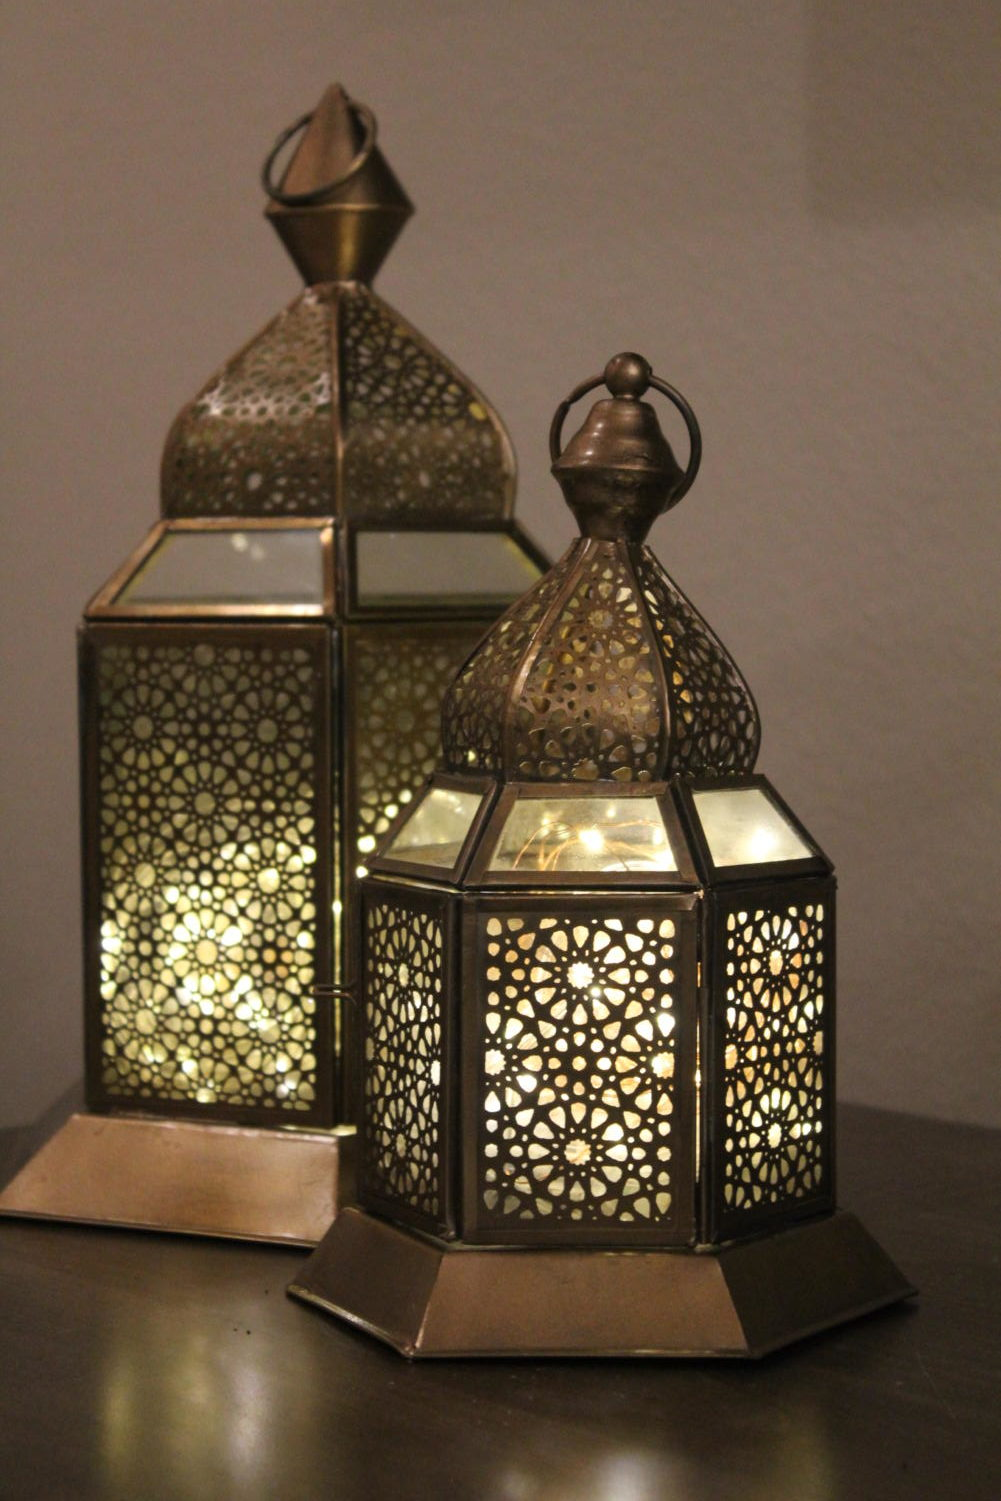 """It is a tradition for many families to decorate their homes for Ramadan. Decorations include lanterns, lights, signs stating """"Happy Ramadan,"""" and much more."""